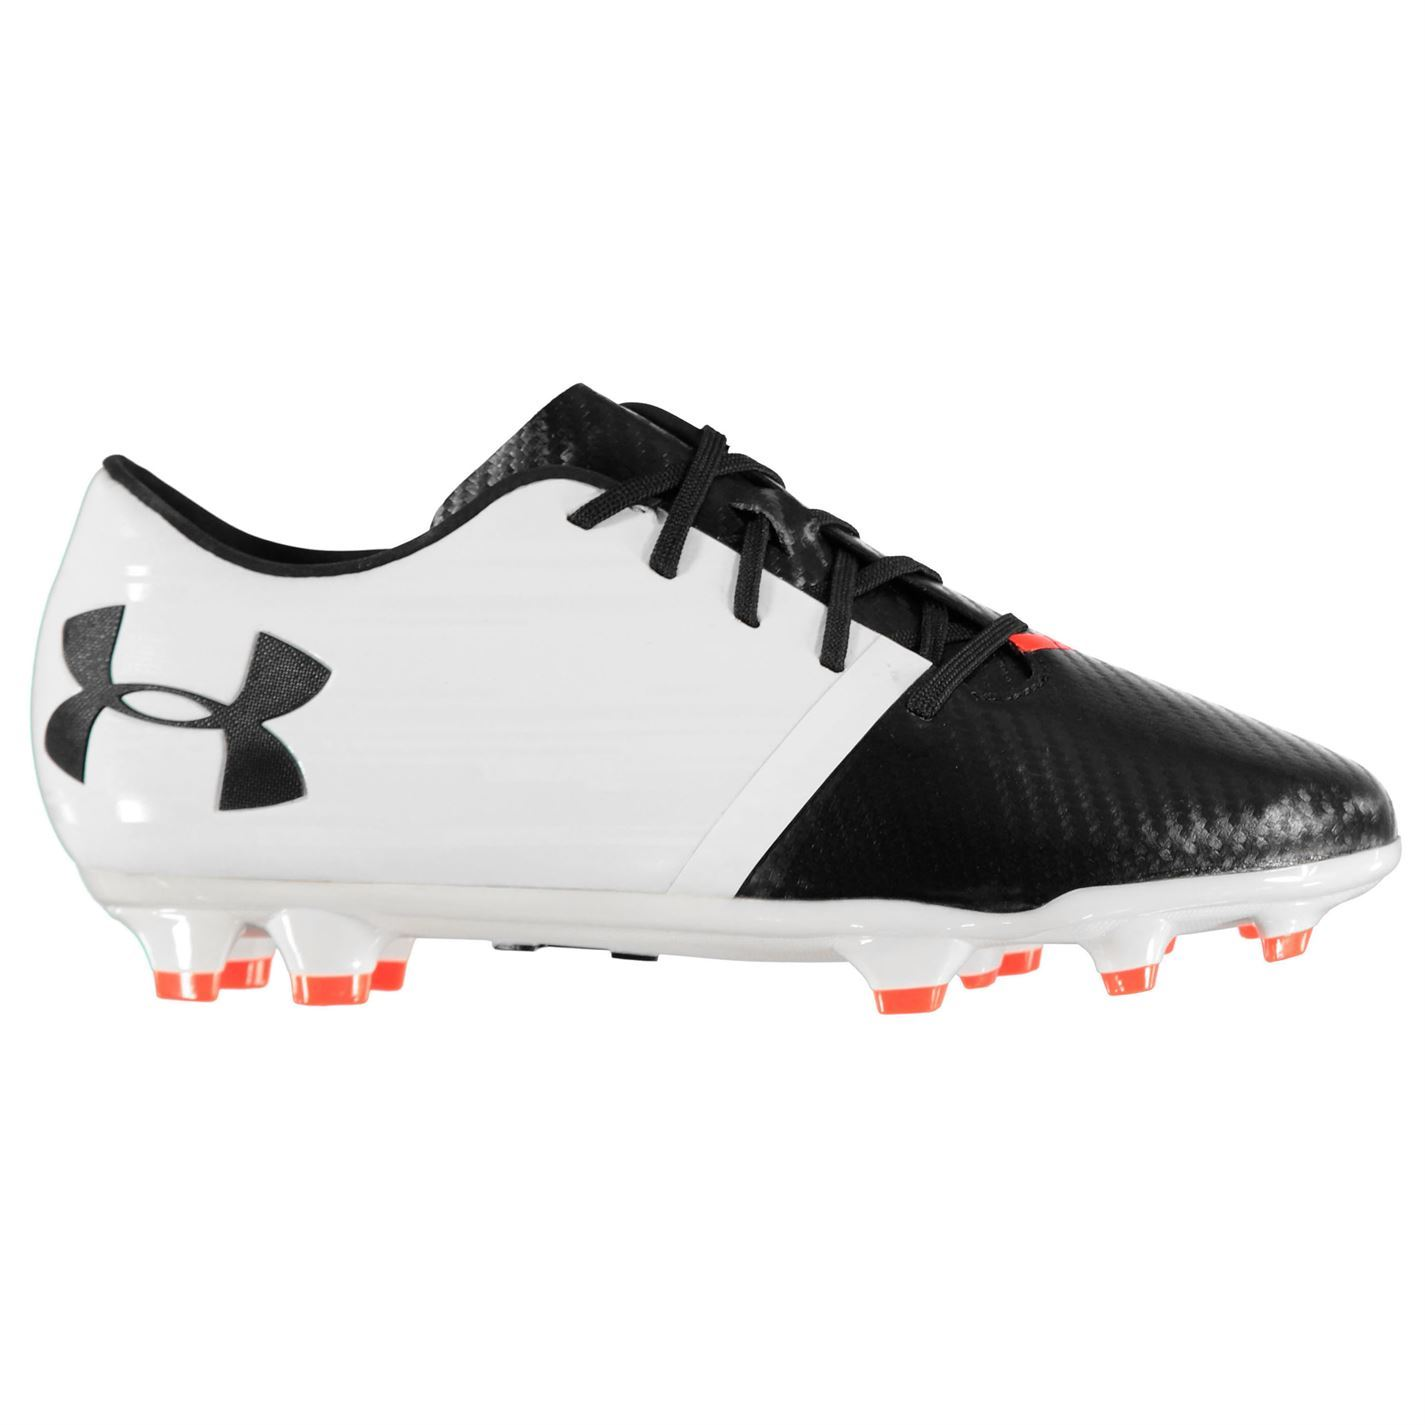 low priced 7724c 5fb68 ... Under Armour Spotlight BL FG Firm Ground Football Boots Mens White  Soccer Cleats ...